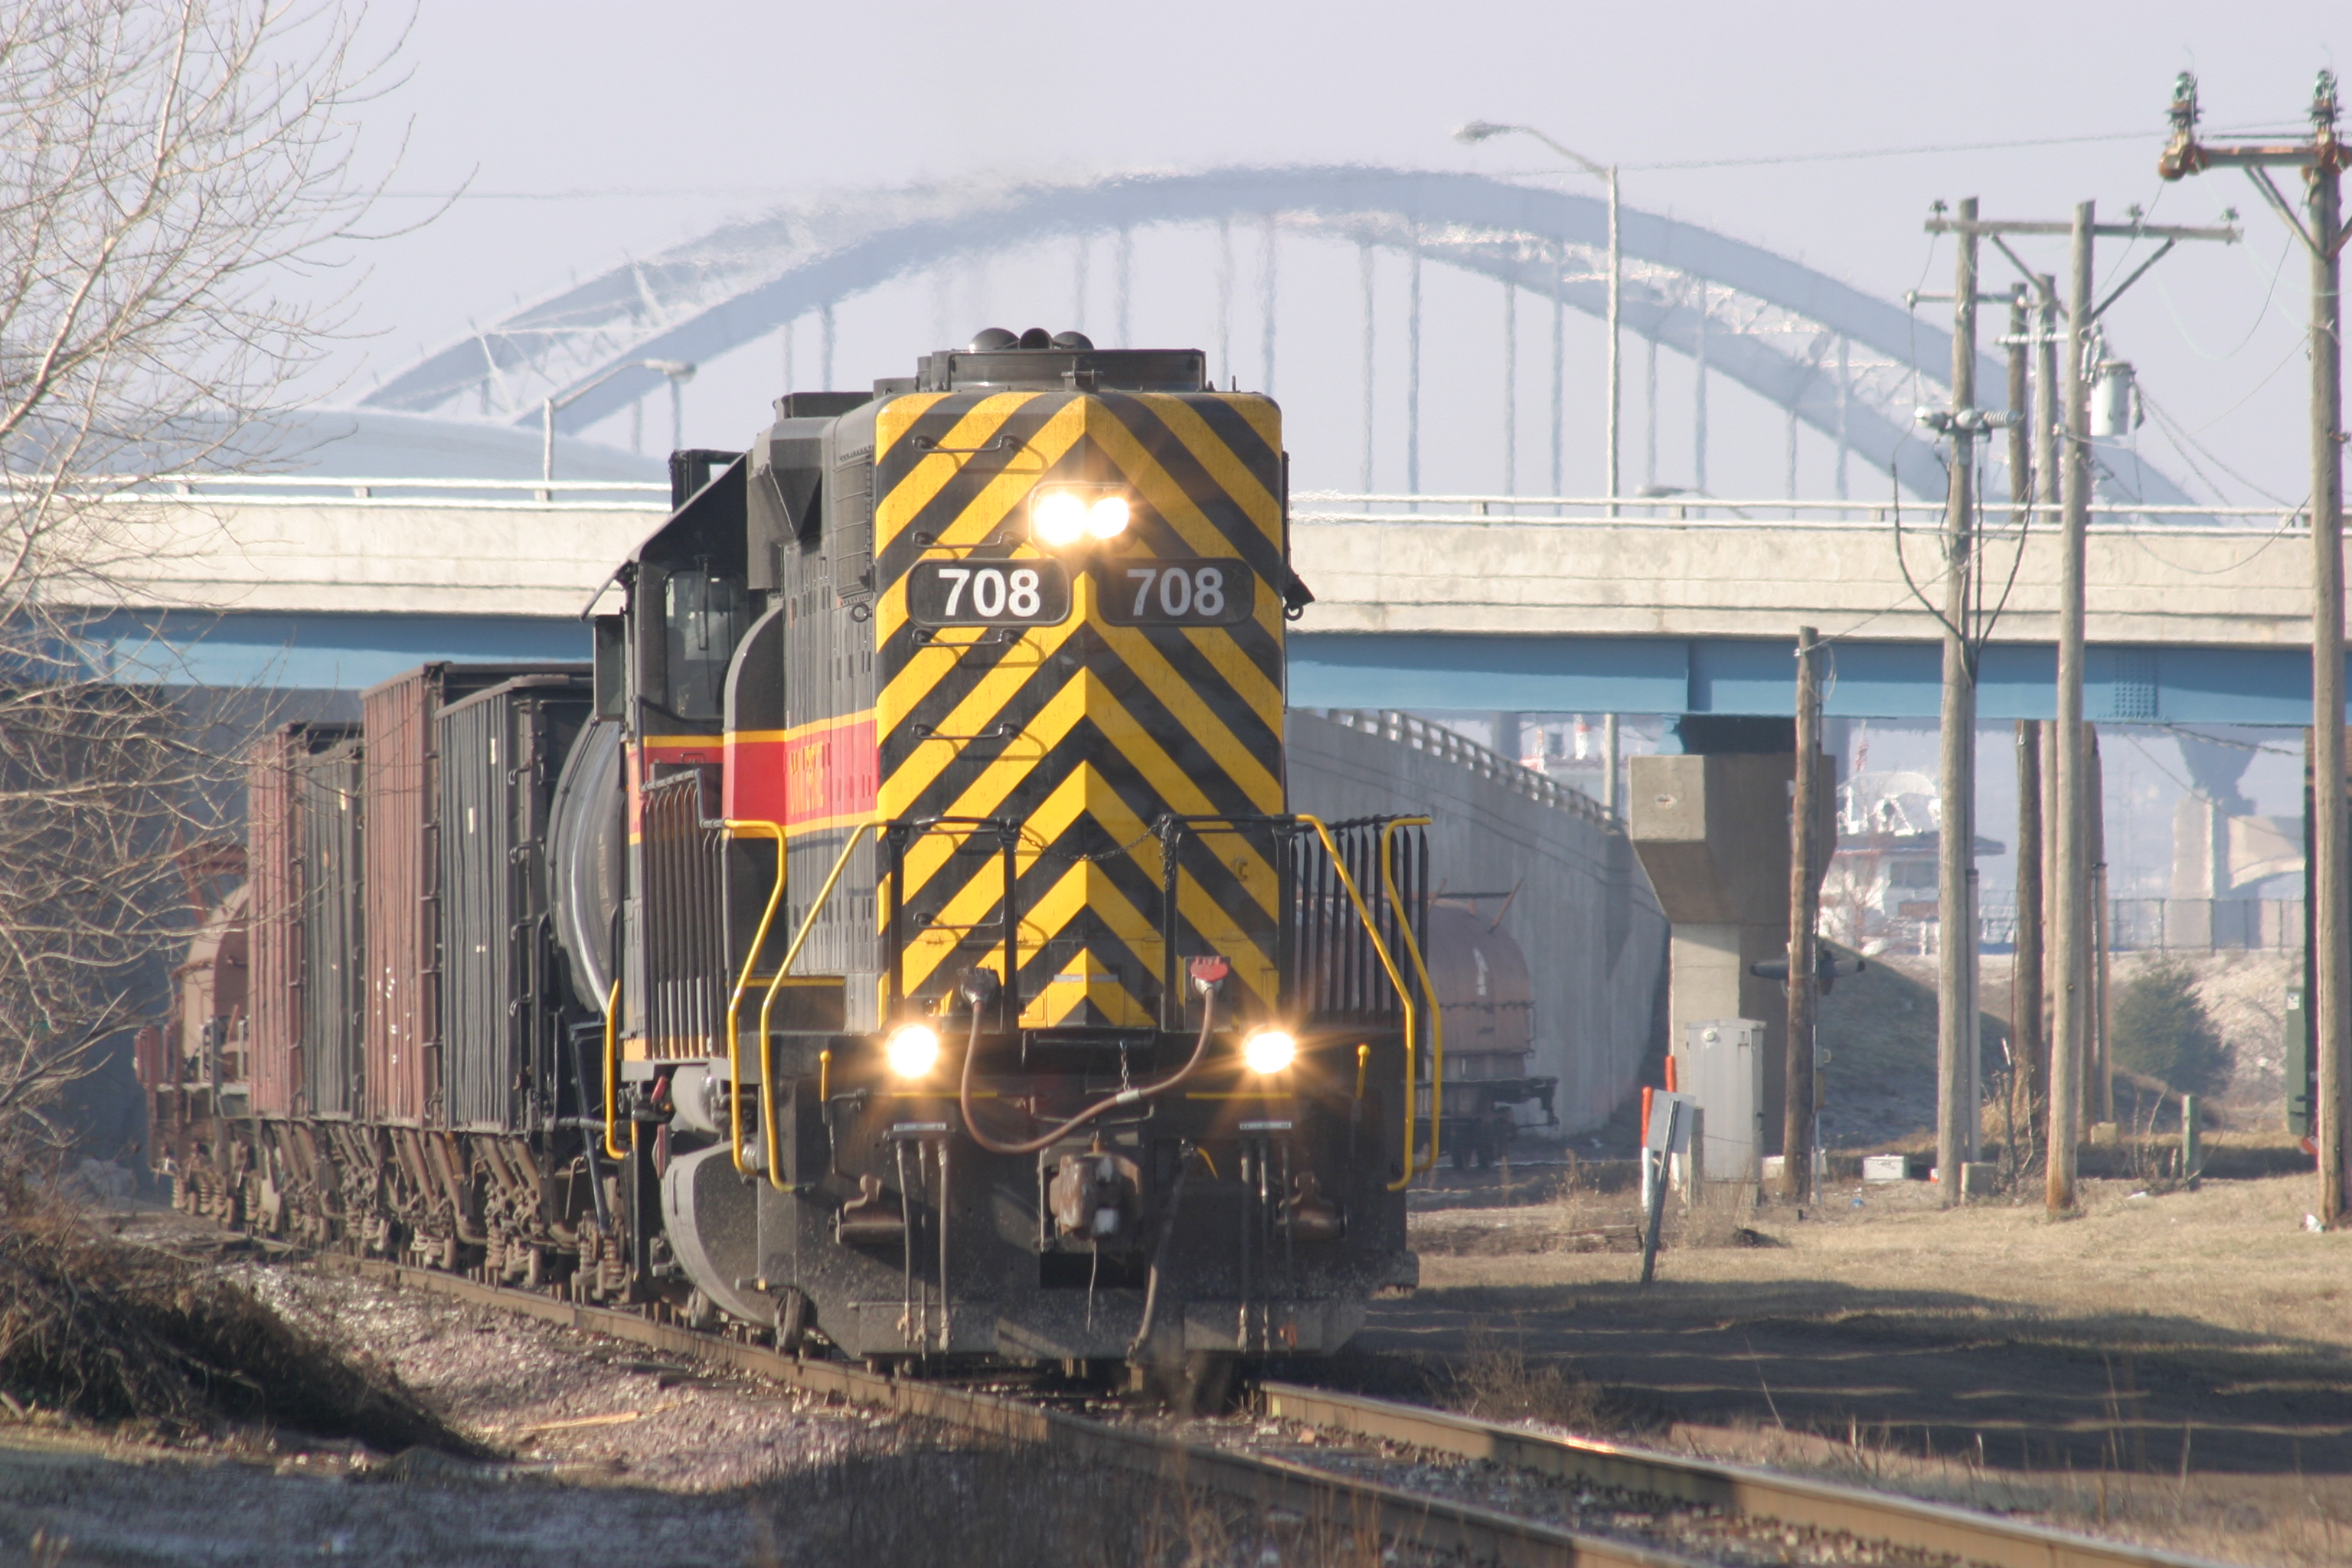 RISW returns to the Rock Island yard with the Centennial Bridge in the background